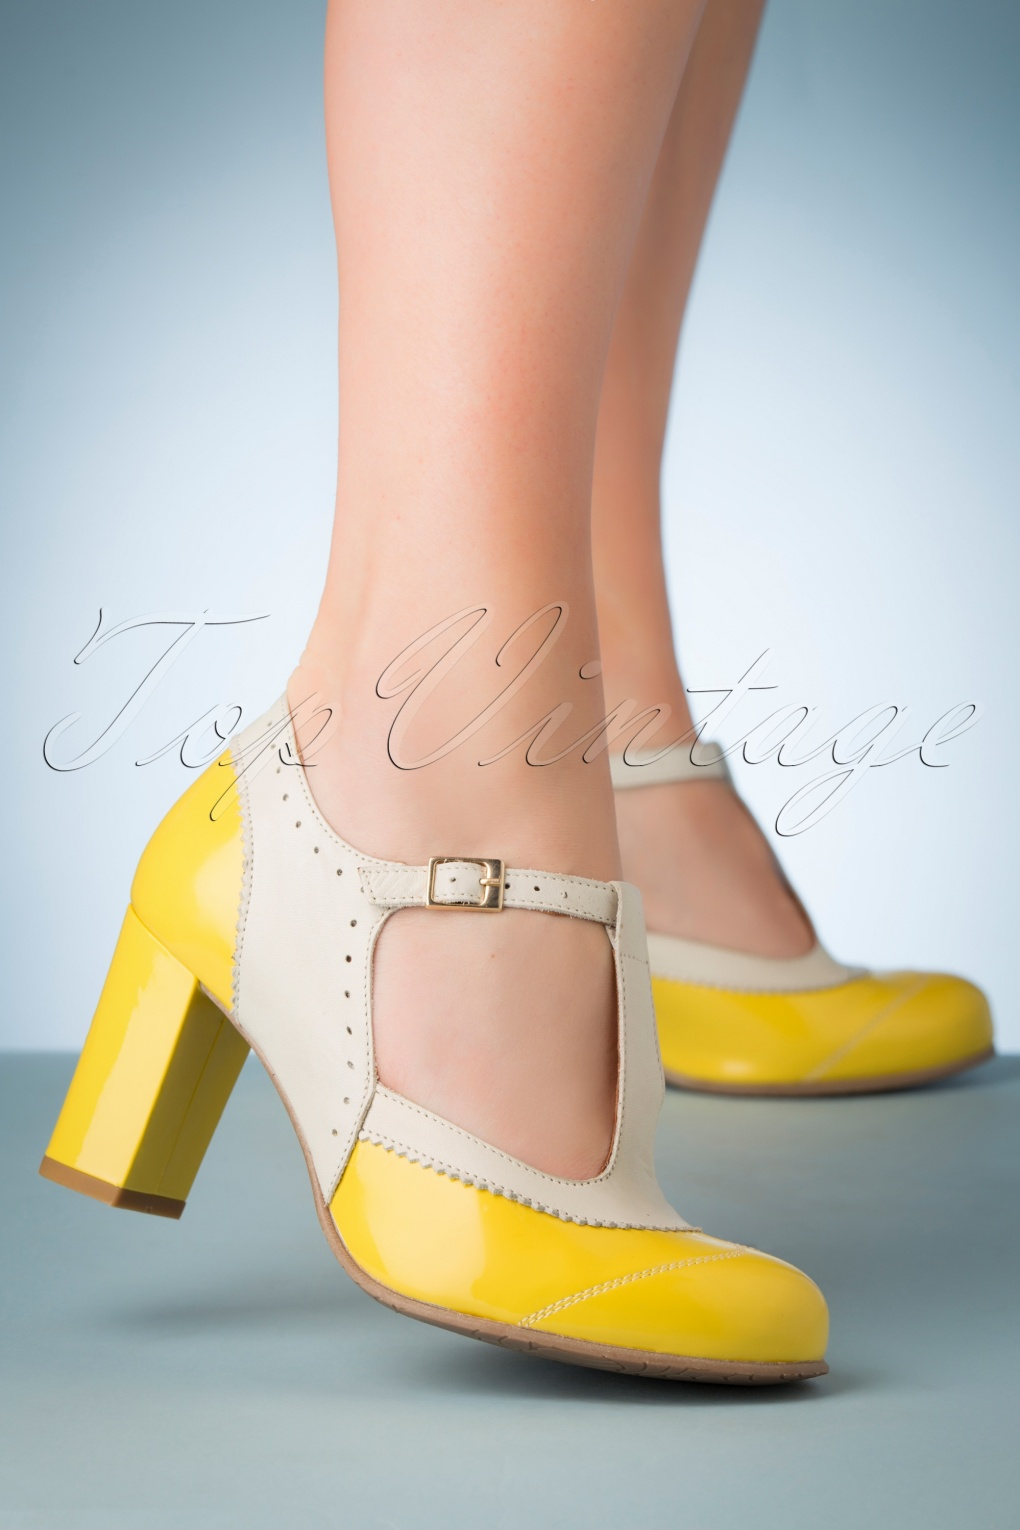 60s Shoes, Boots | 70s Shoes, Platforms, Boots 60s Ada Pumo Leather T-Strap Pumps in Yellow �129.47 AT vintagedancer.com